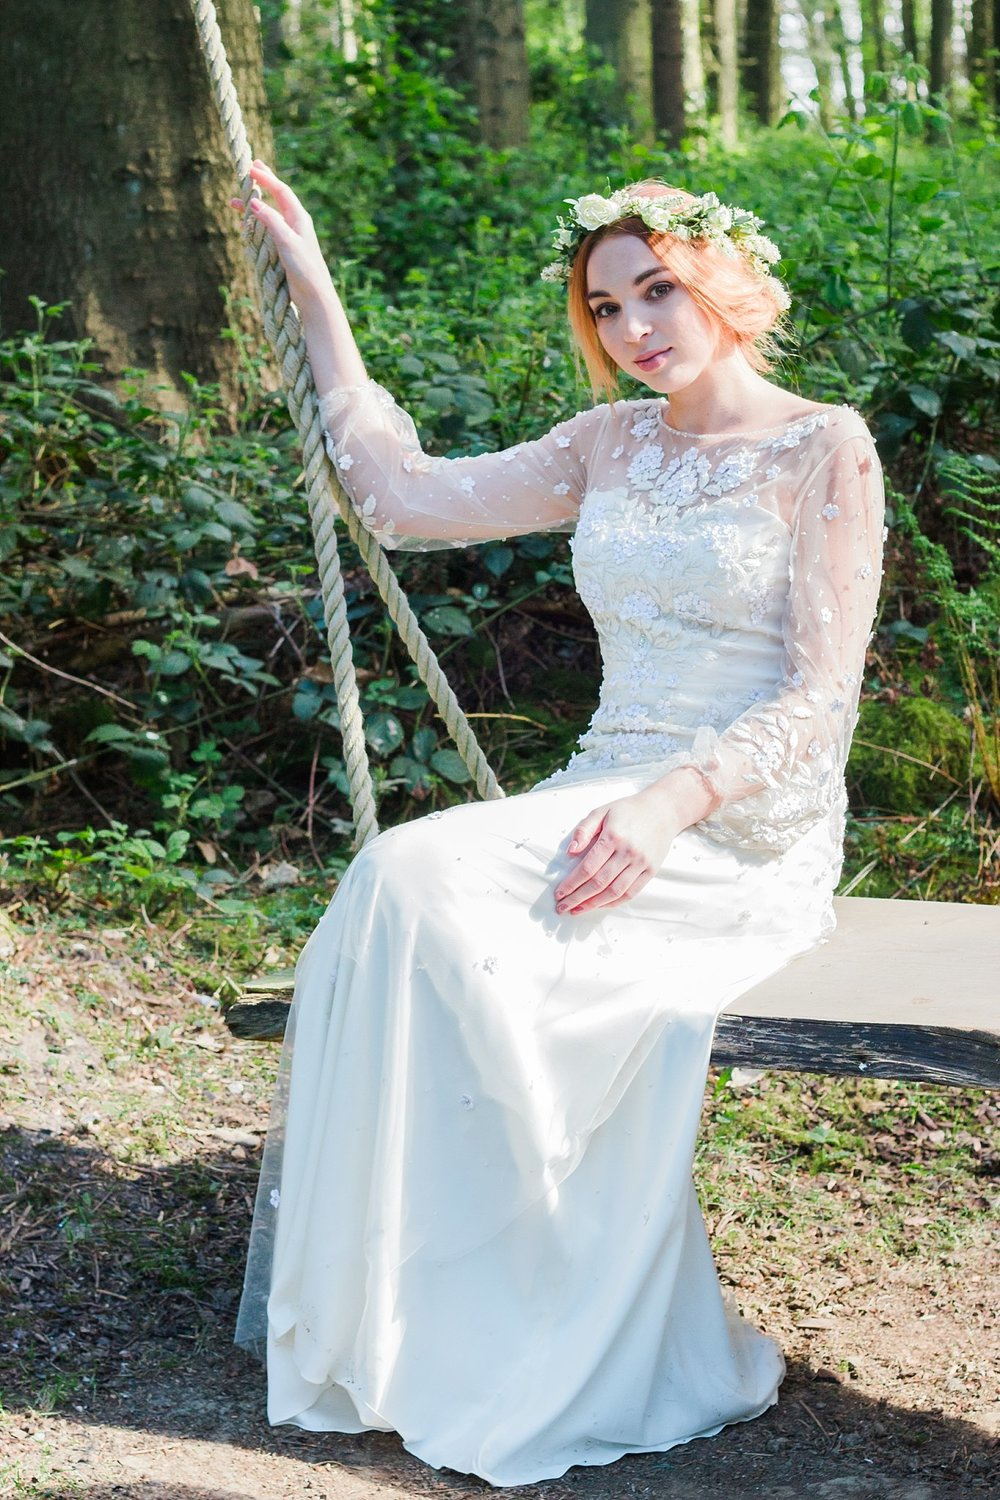 Vintage Amy Wedding Styling-Vintage Whimsical Woodland Wedding Kent-Vintage Flower Crown Bride